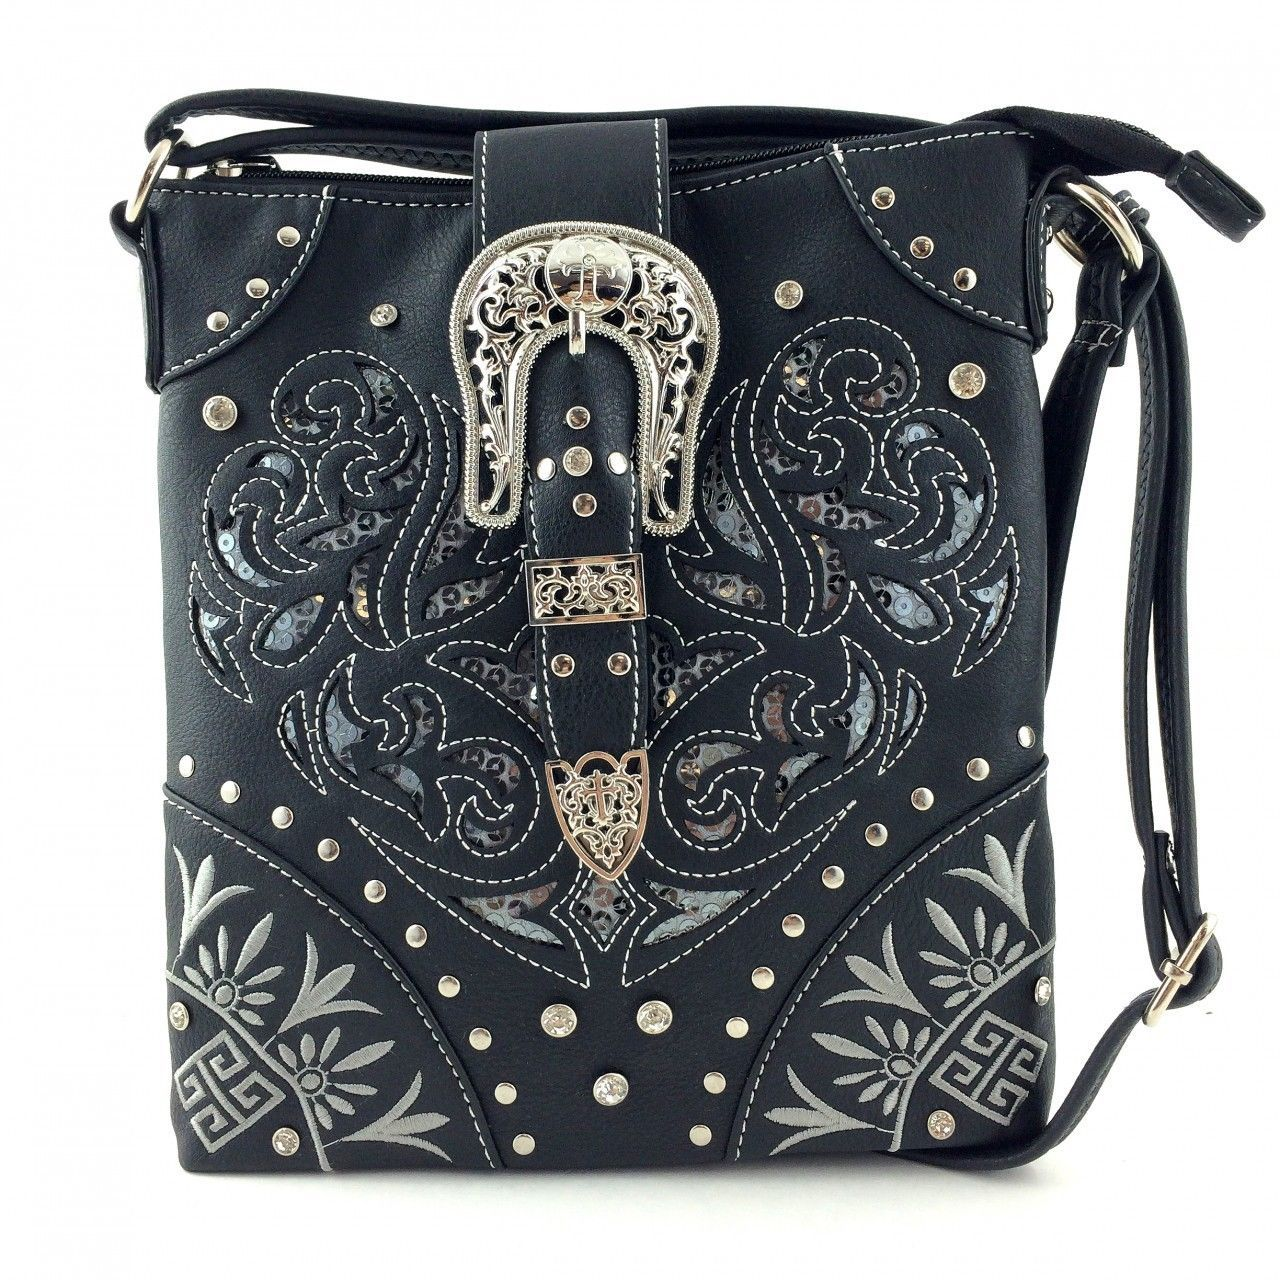 Western Buckle Laser Cut Messenger Bag Cross Body Purse w/ Concealed Gun Pocket